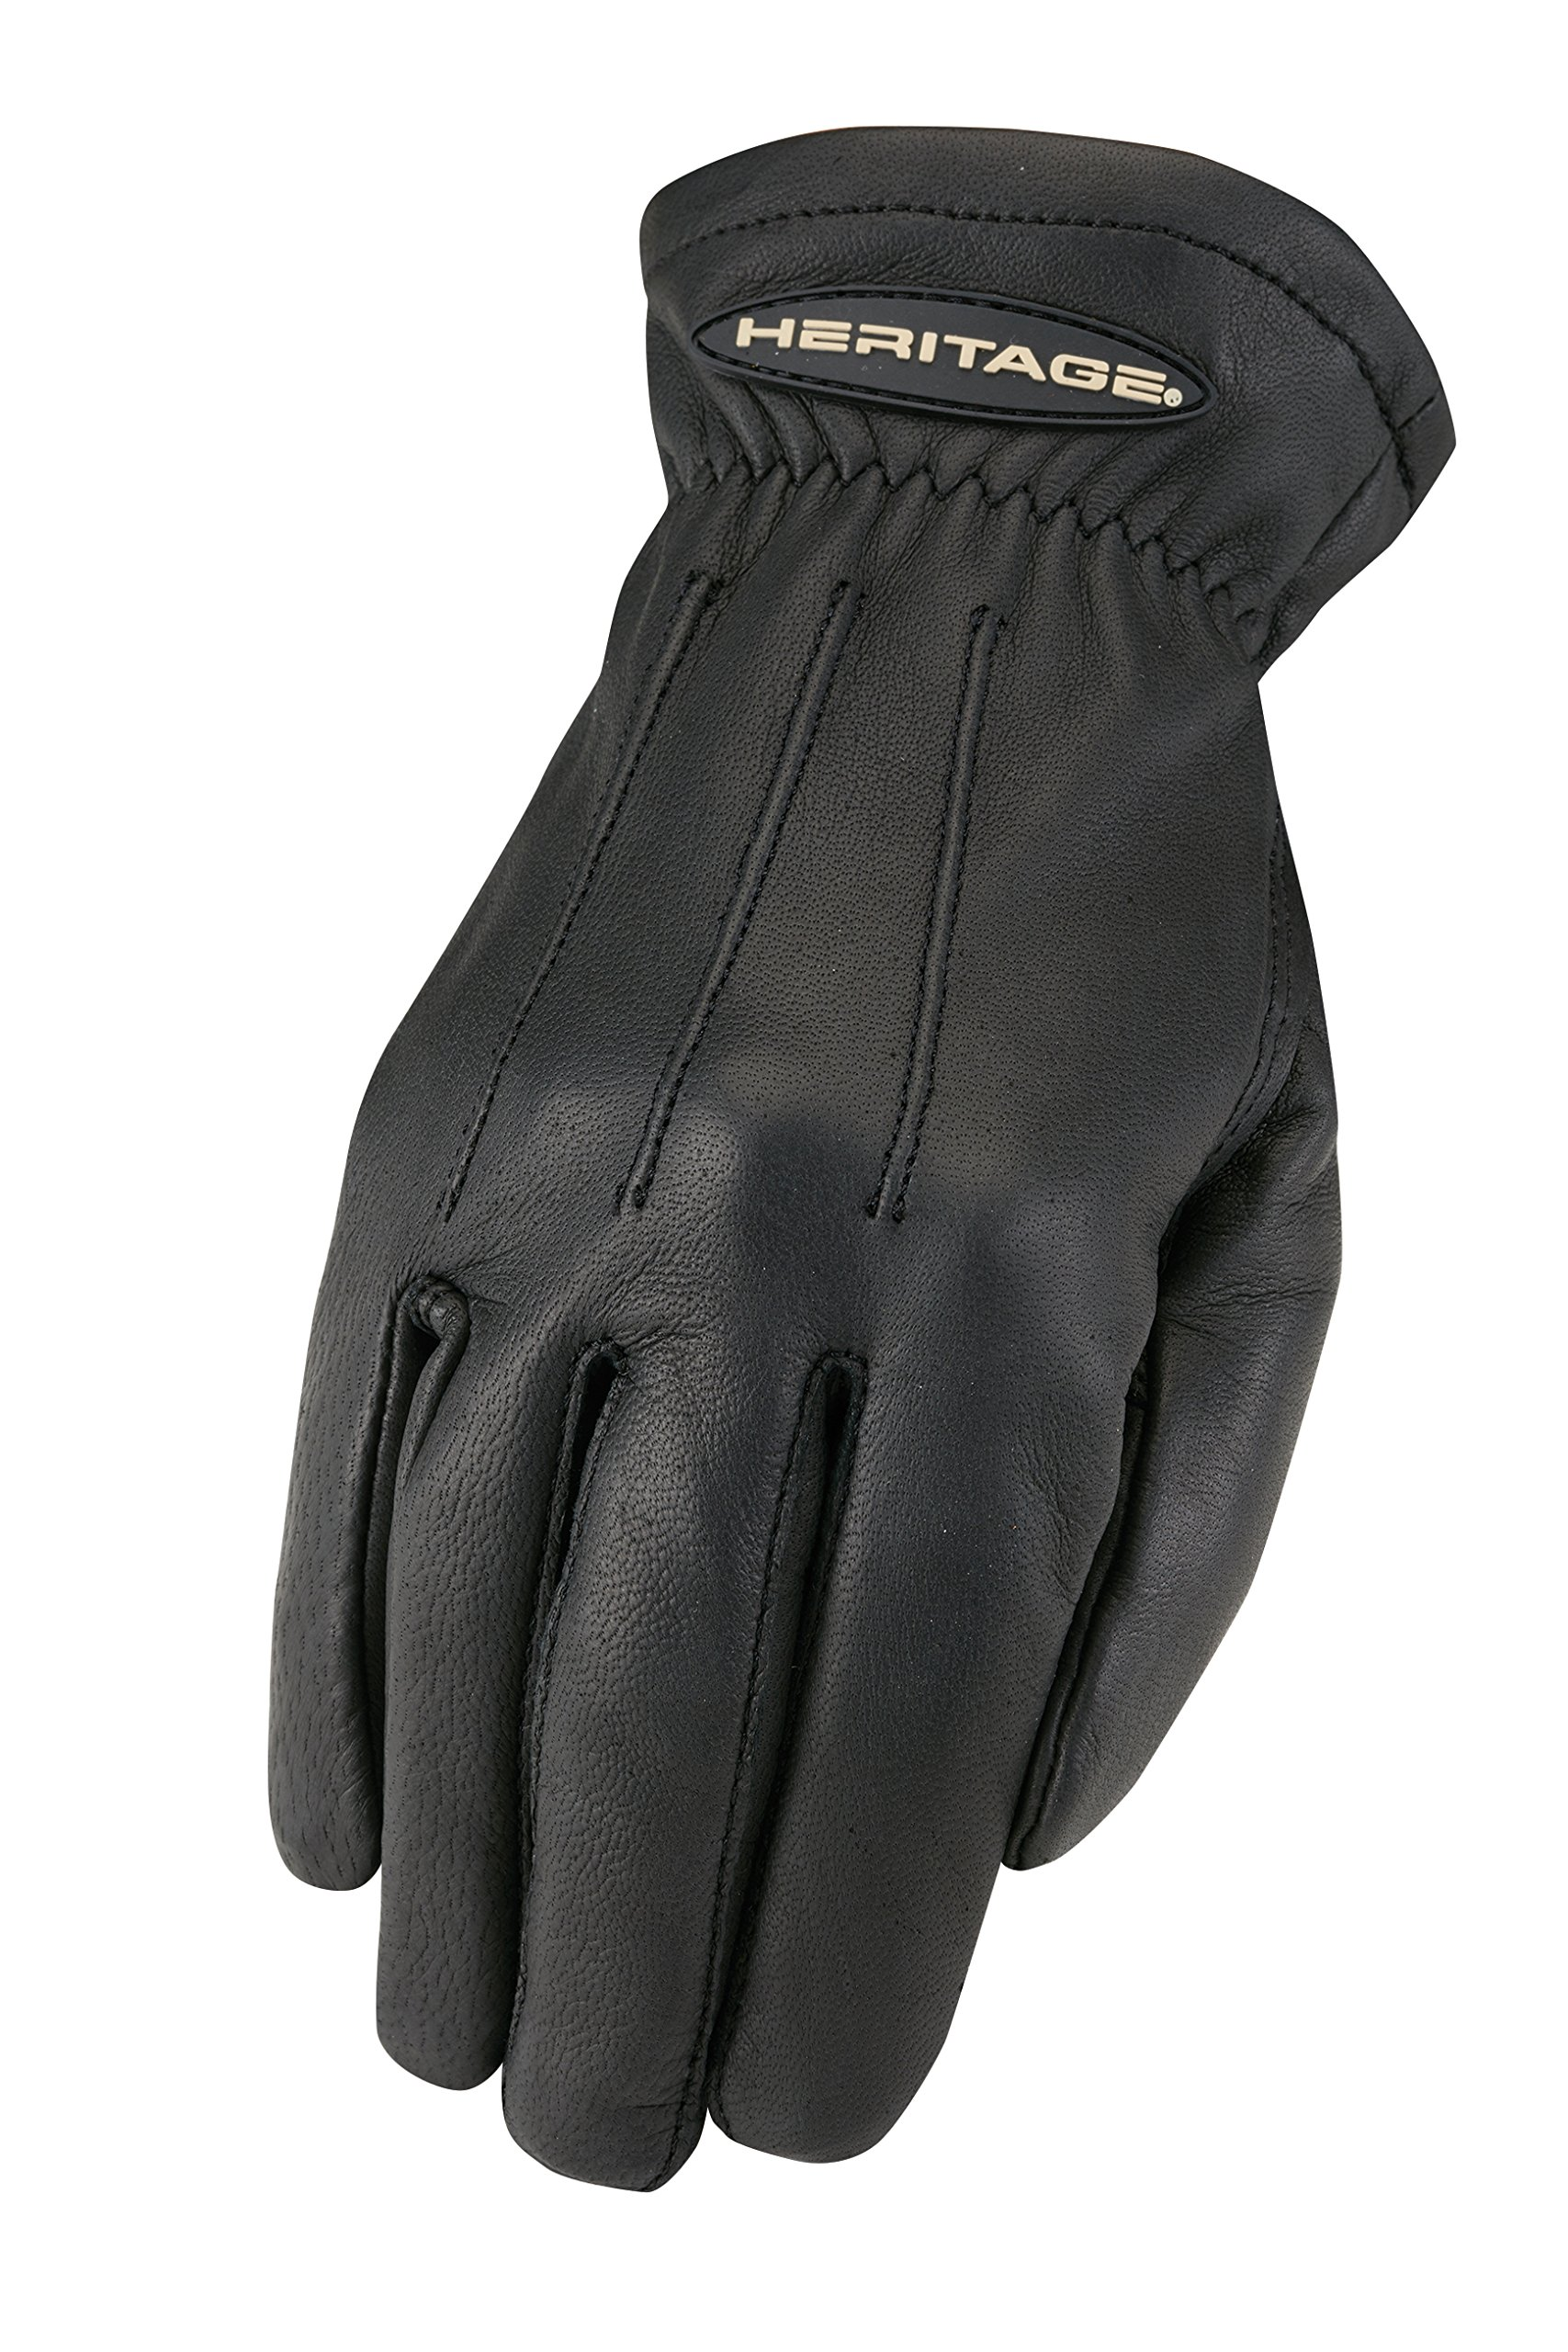 Heritage Trail Gloves, Size 7, Black